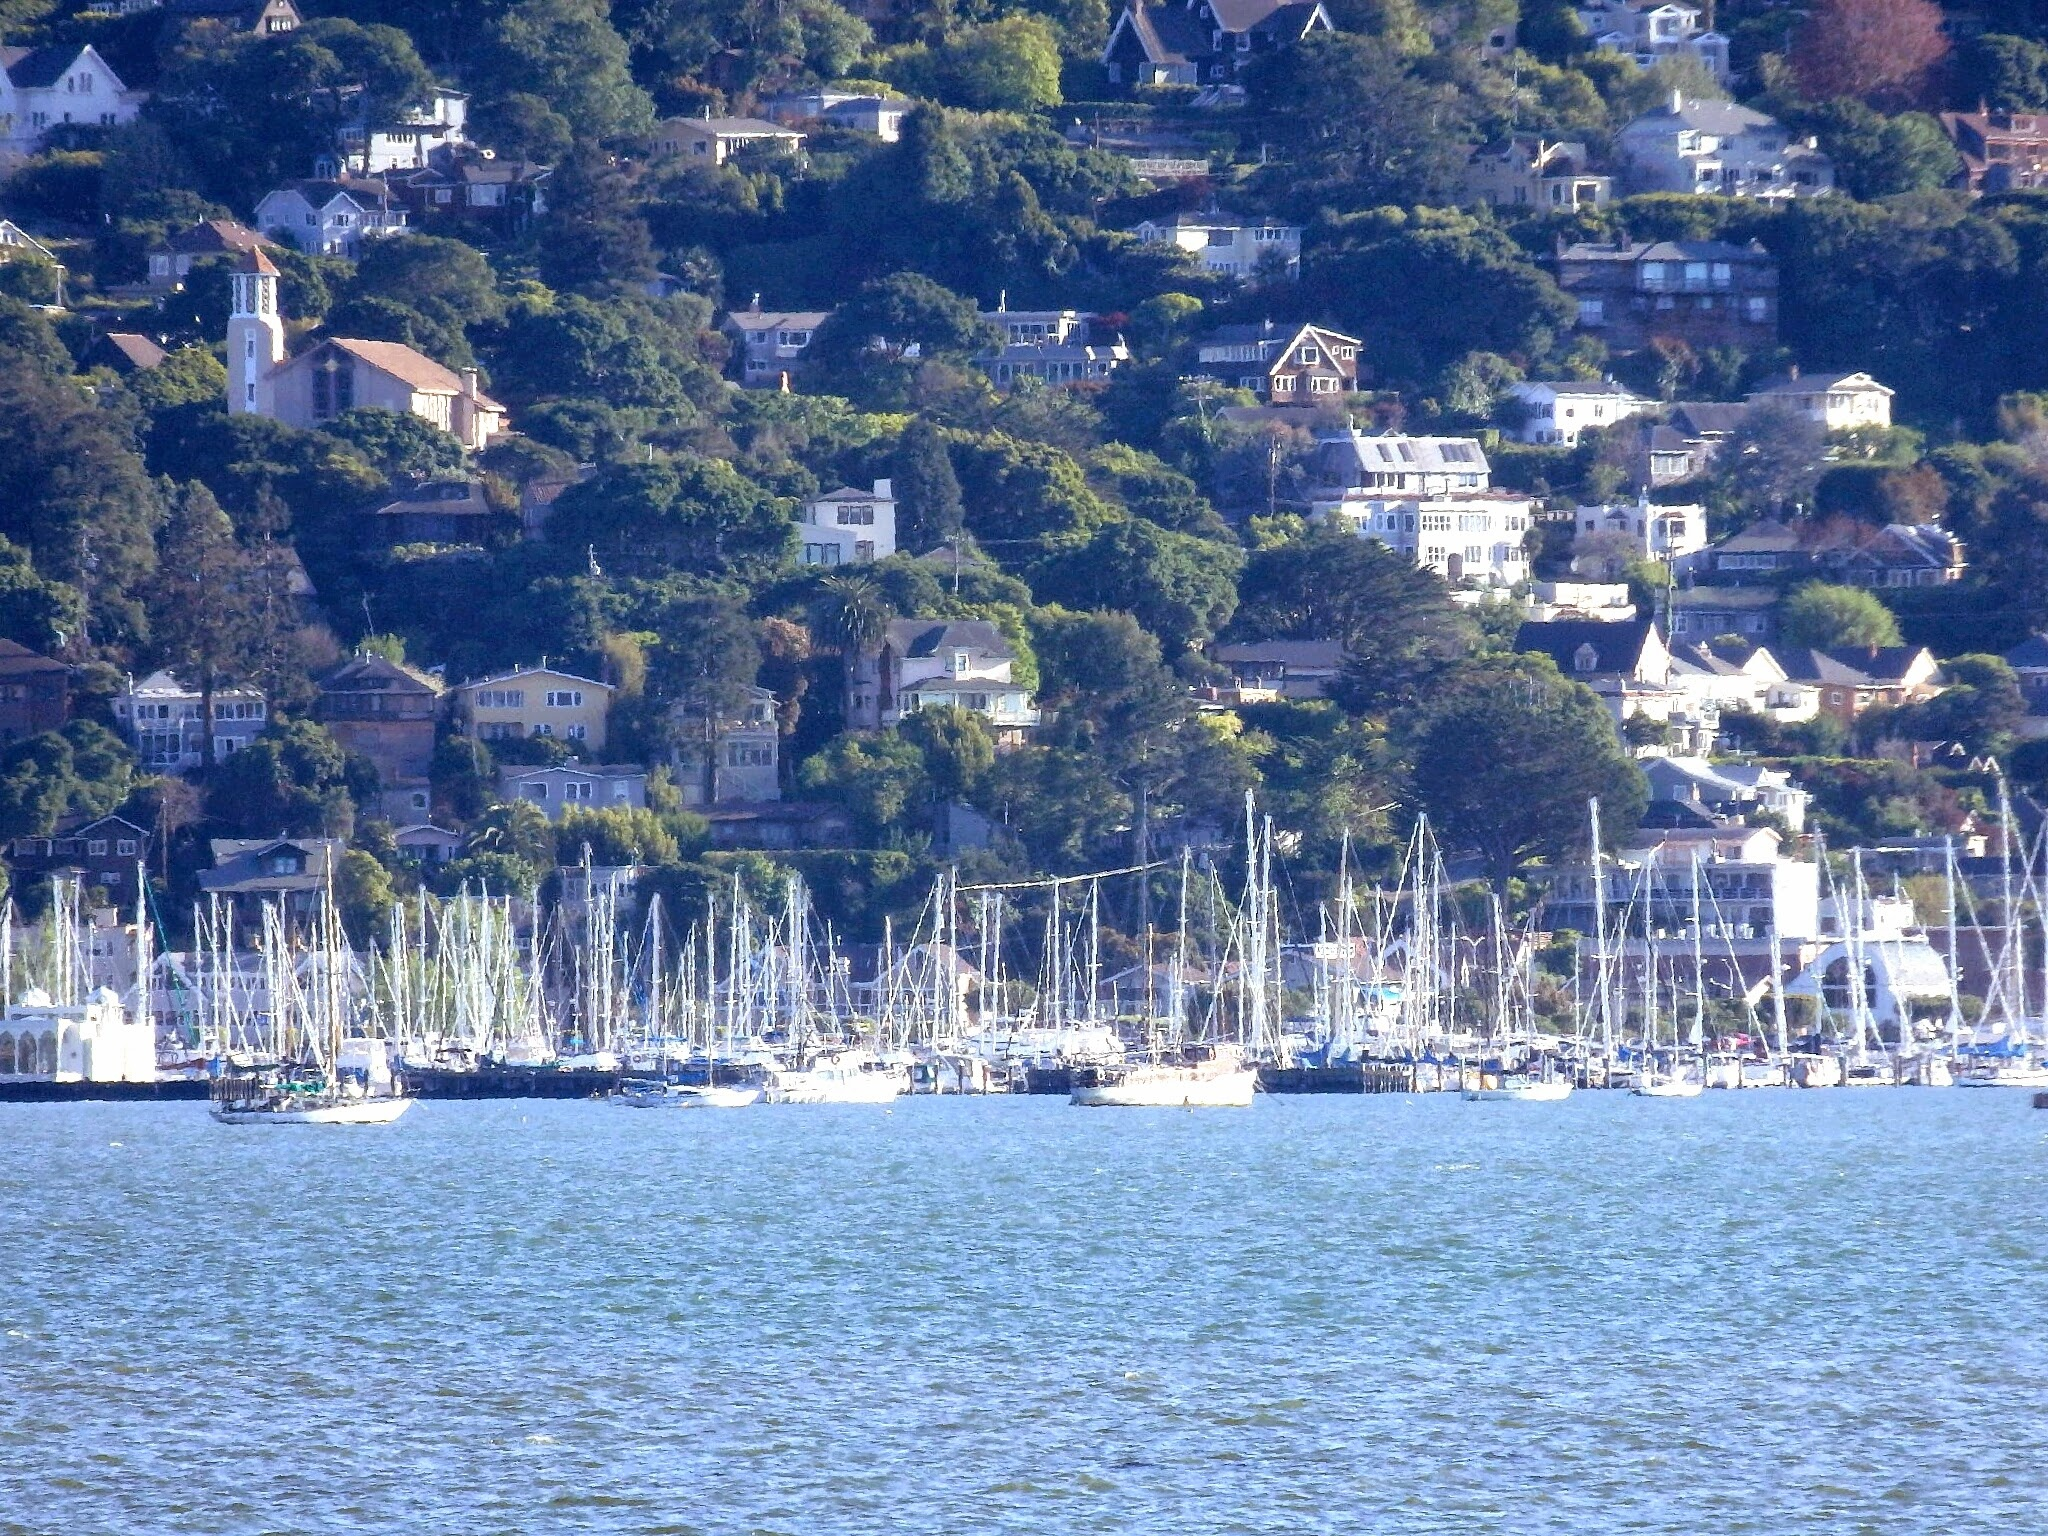 The Sausalito, CA harbor, taken from Tiburon, CA.  by Victoria JD